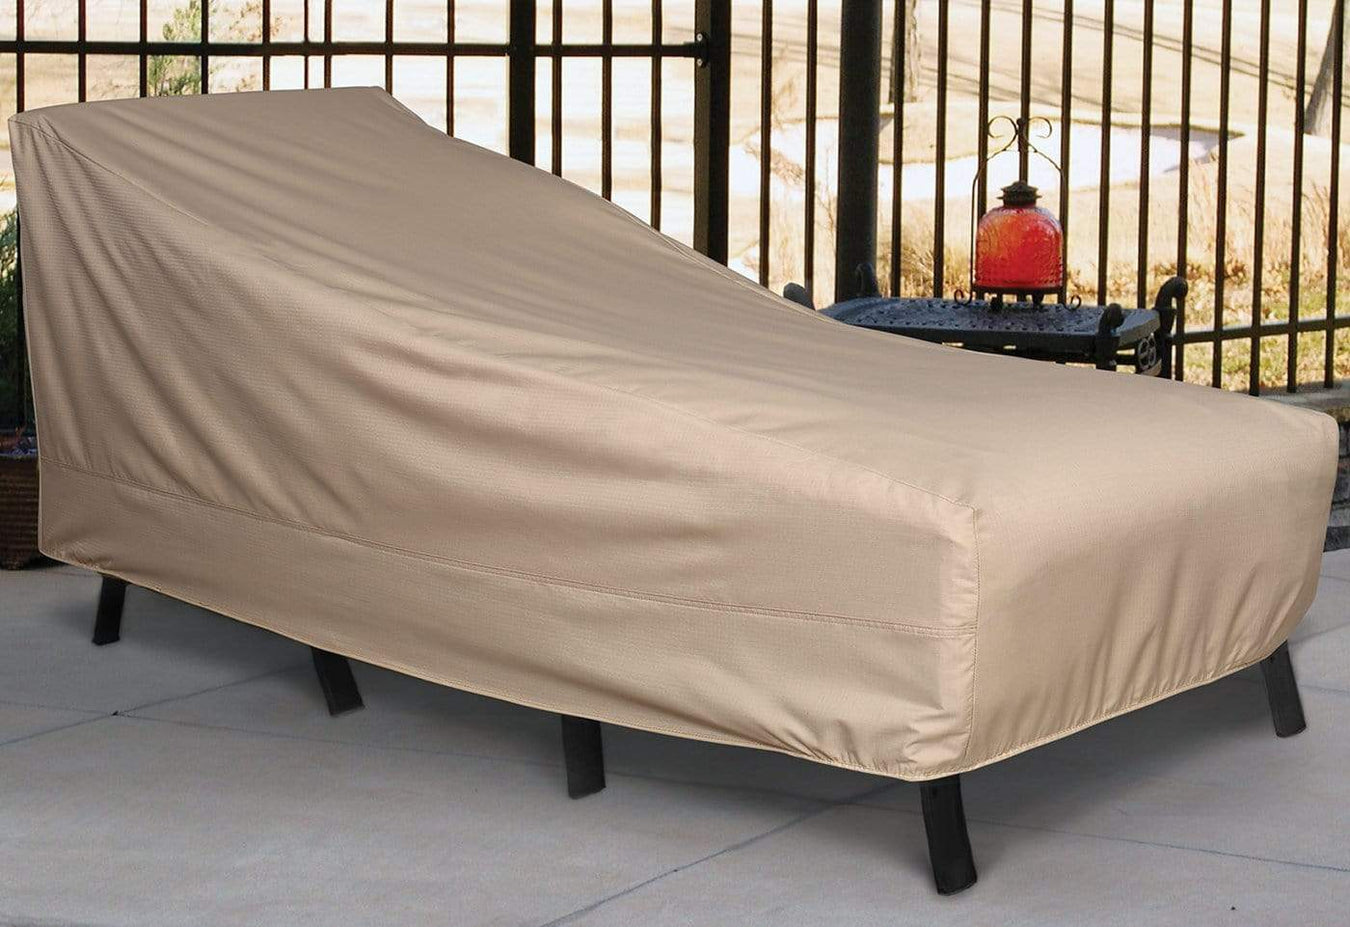 Patio Armor Chaise Lounge Outdoor Furniture Cover